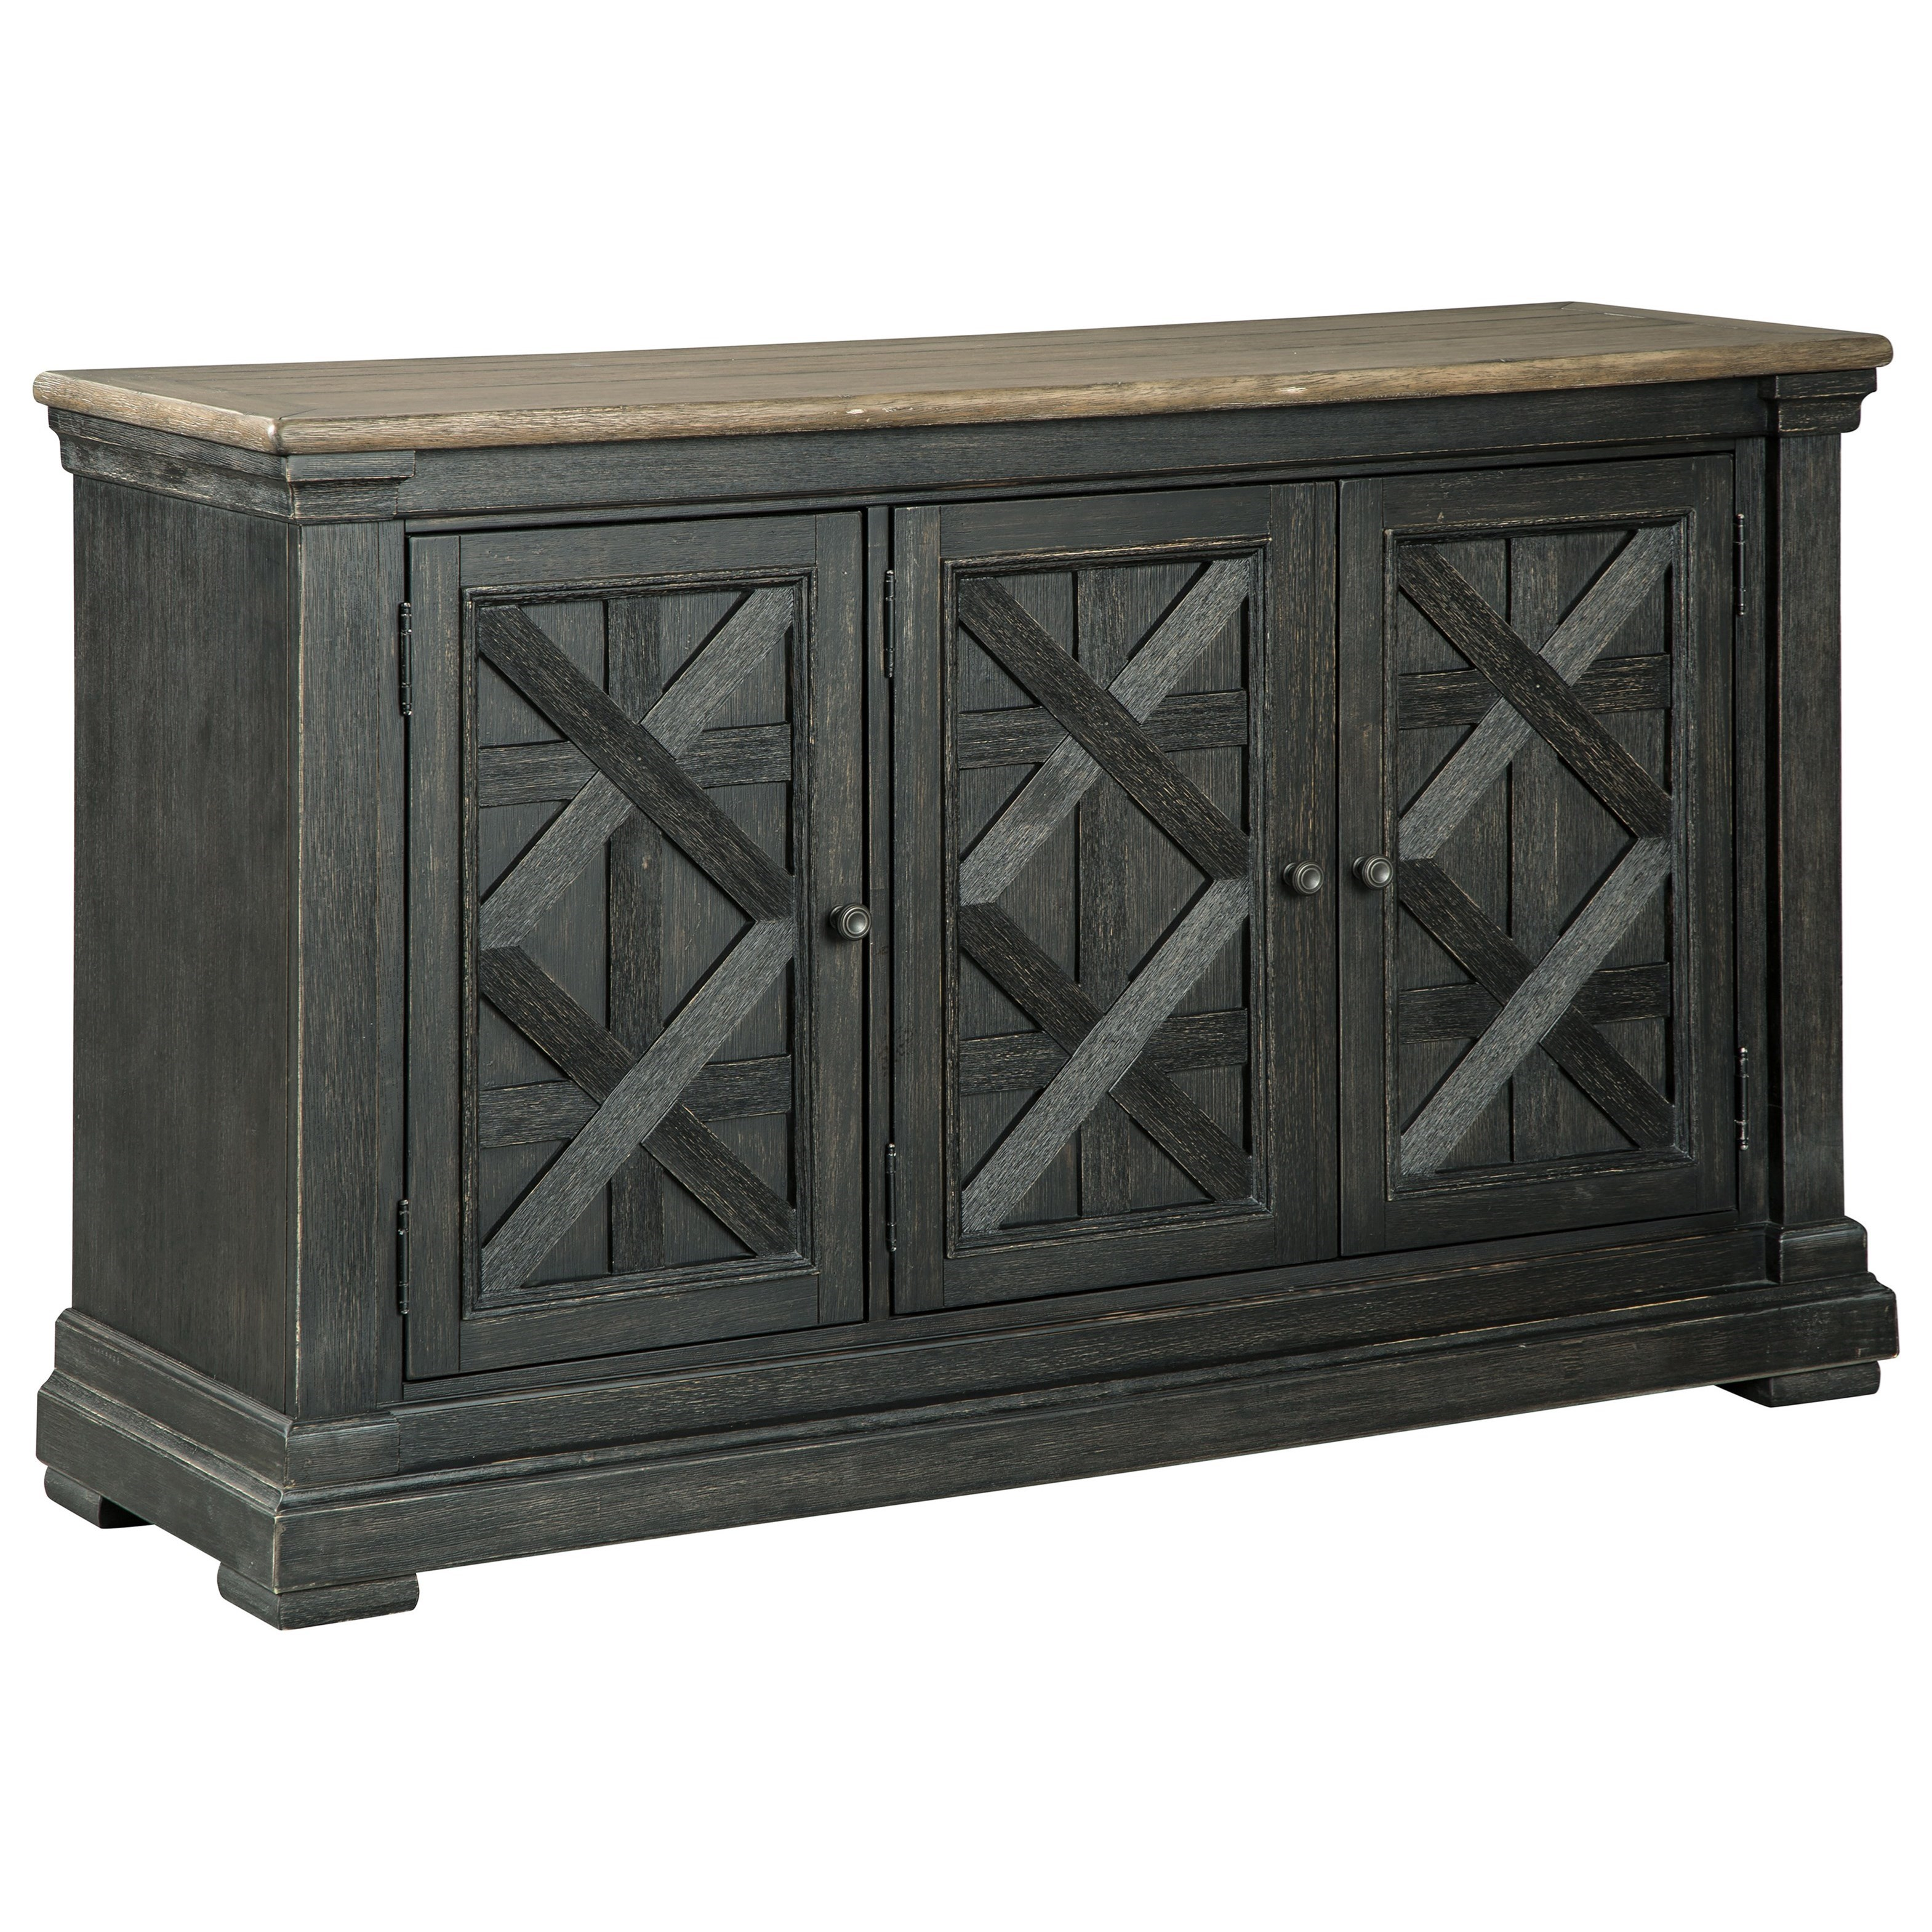 Tyler Creek Dining Room Server by Signature Design by Ashley at Northeast Factory Direct